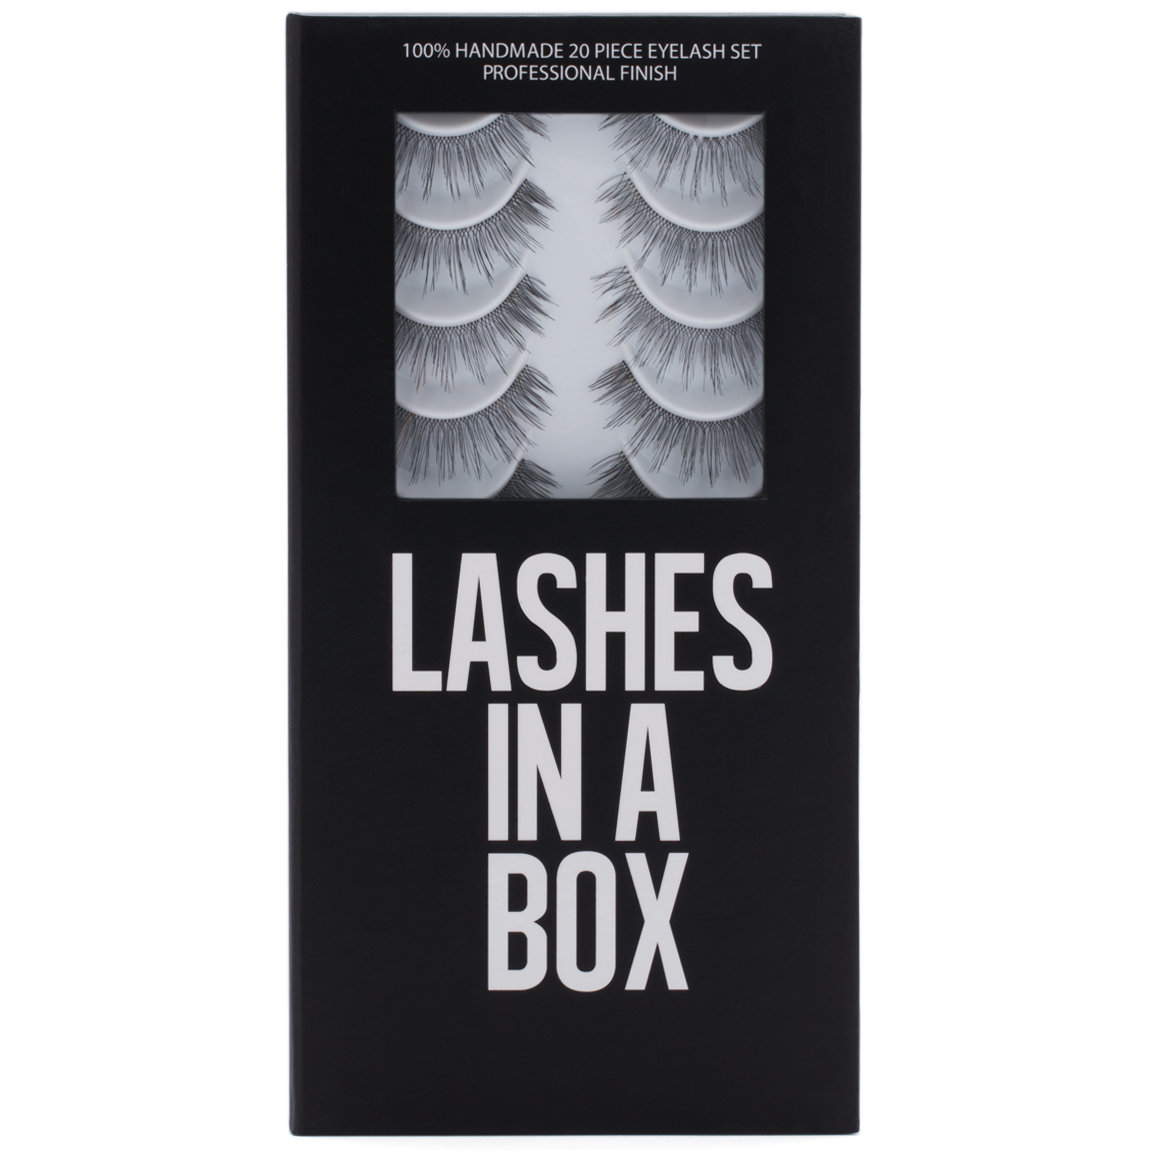 LASHES IN A BOX N°3 product swatch.